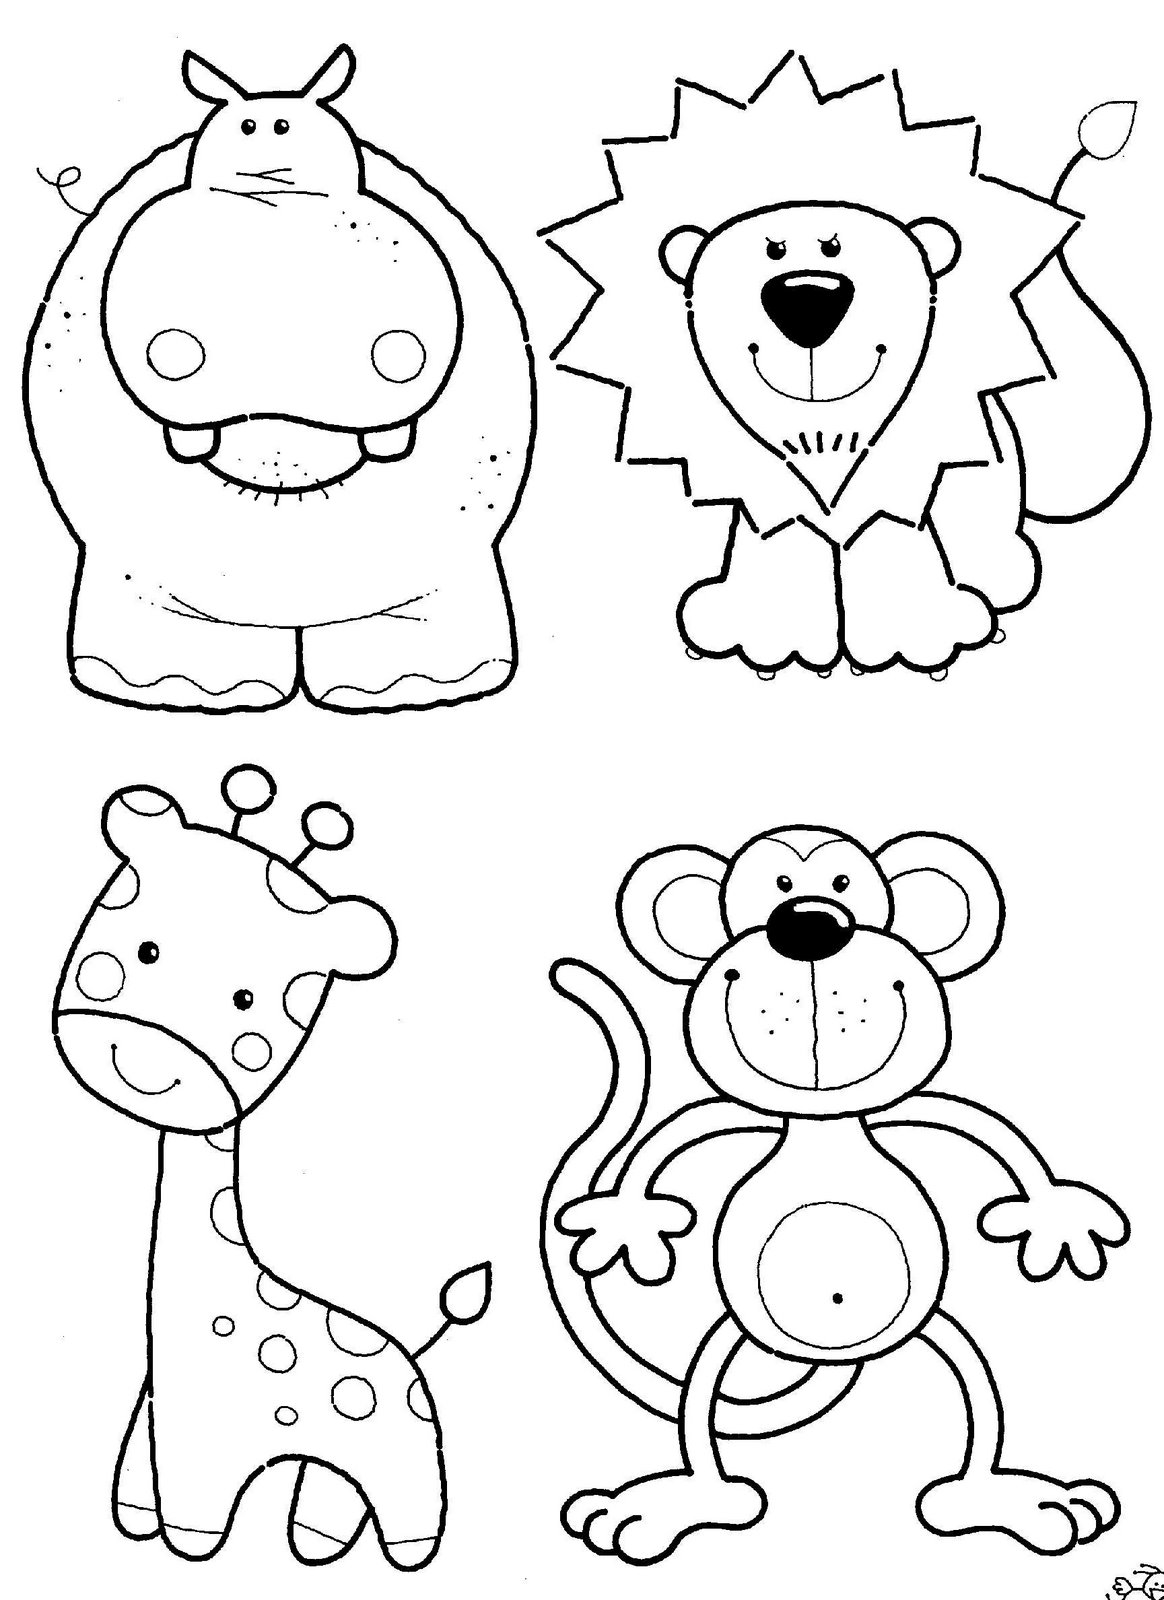 coloring worksheets animals 10 cute animals coloring pages worksheets animals coloring